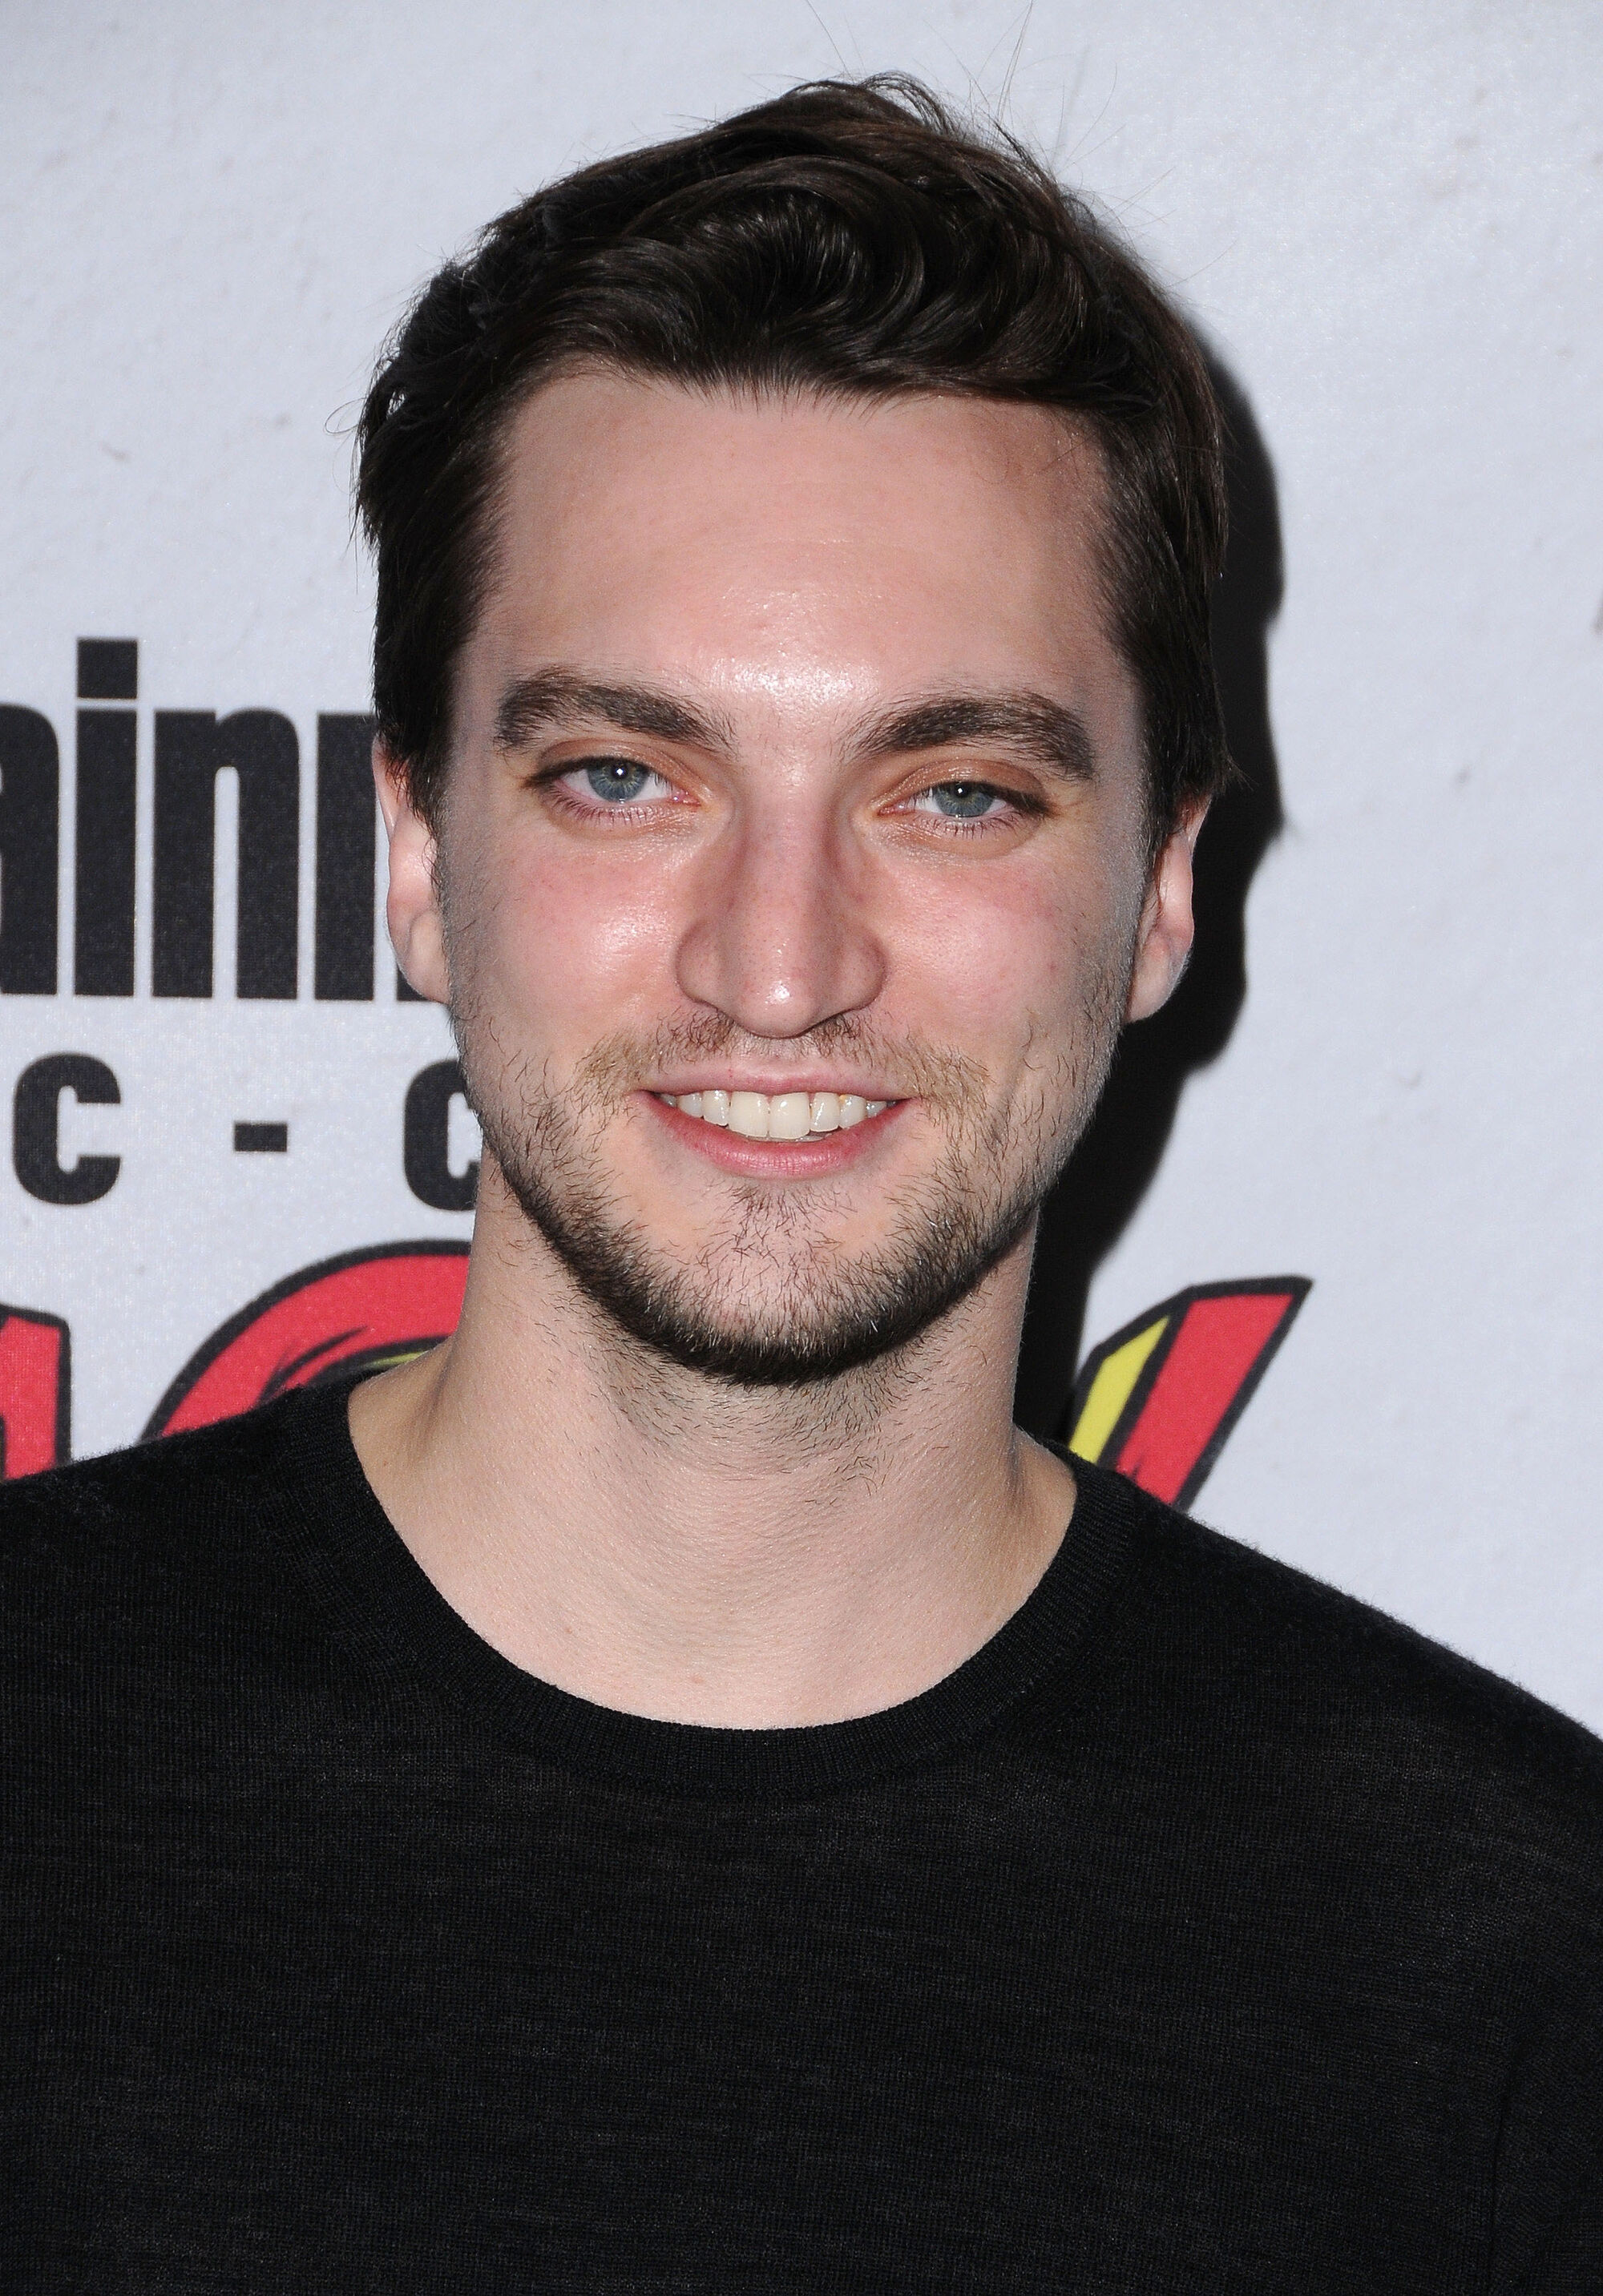 Discussion on this topic: Suzanne Whang, richard-harmon/